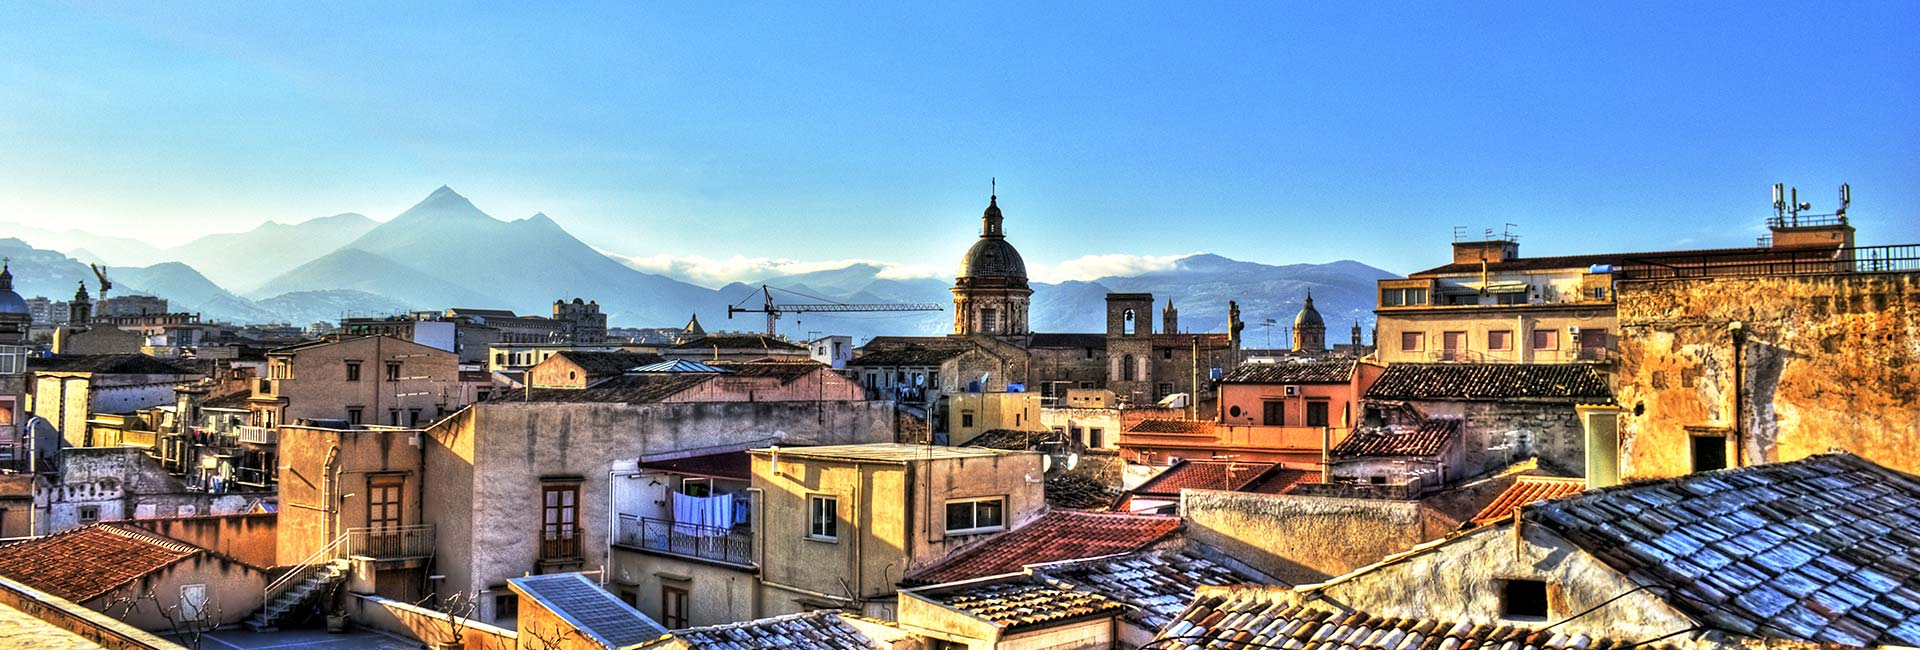 Real estate industry in Sicily